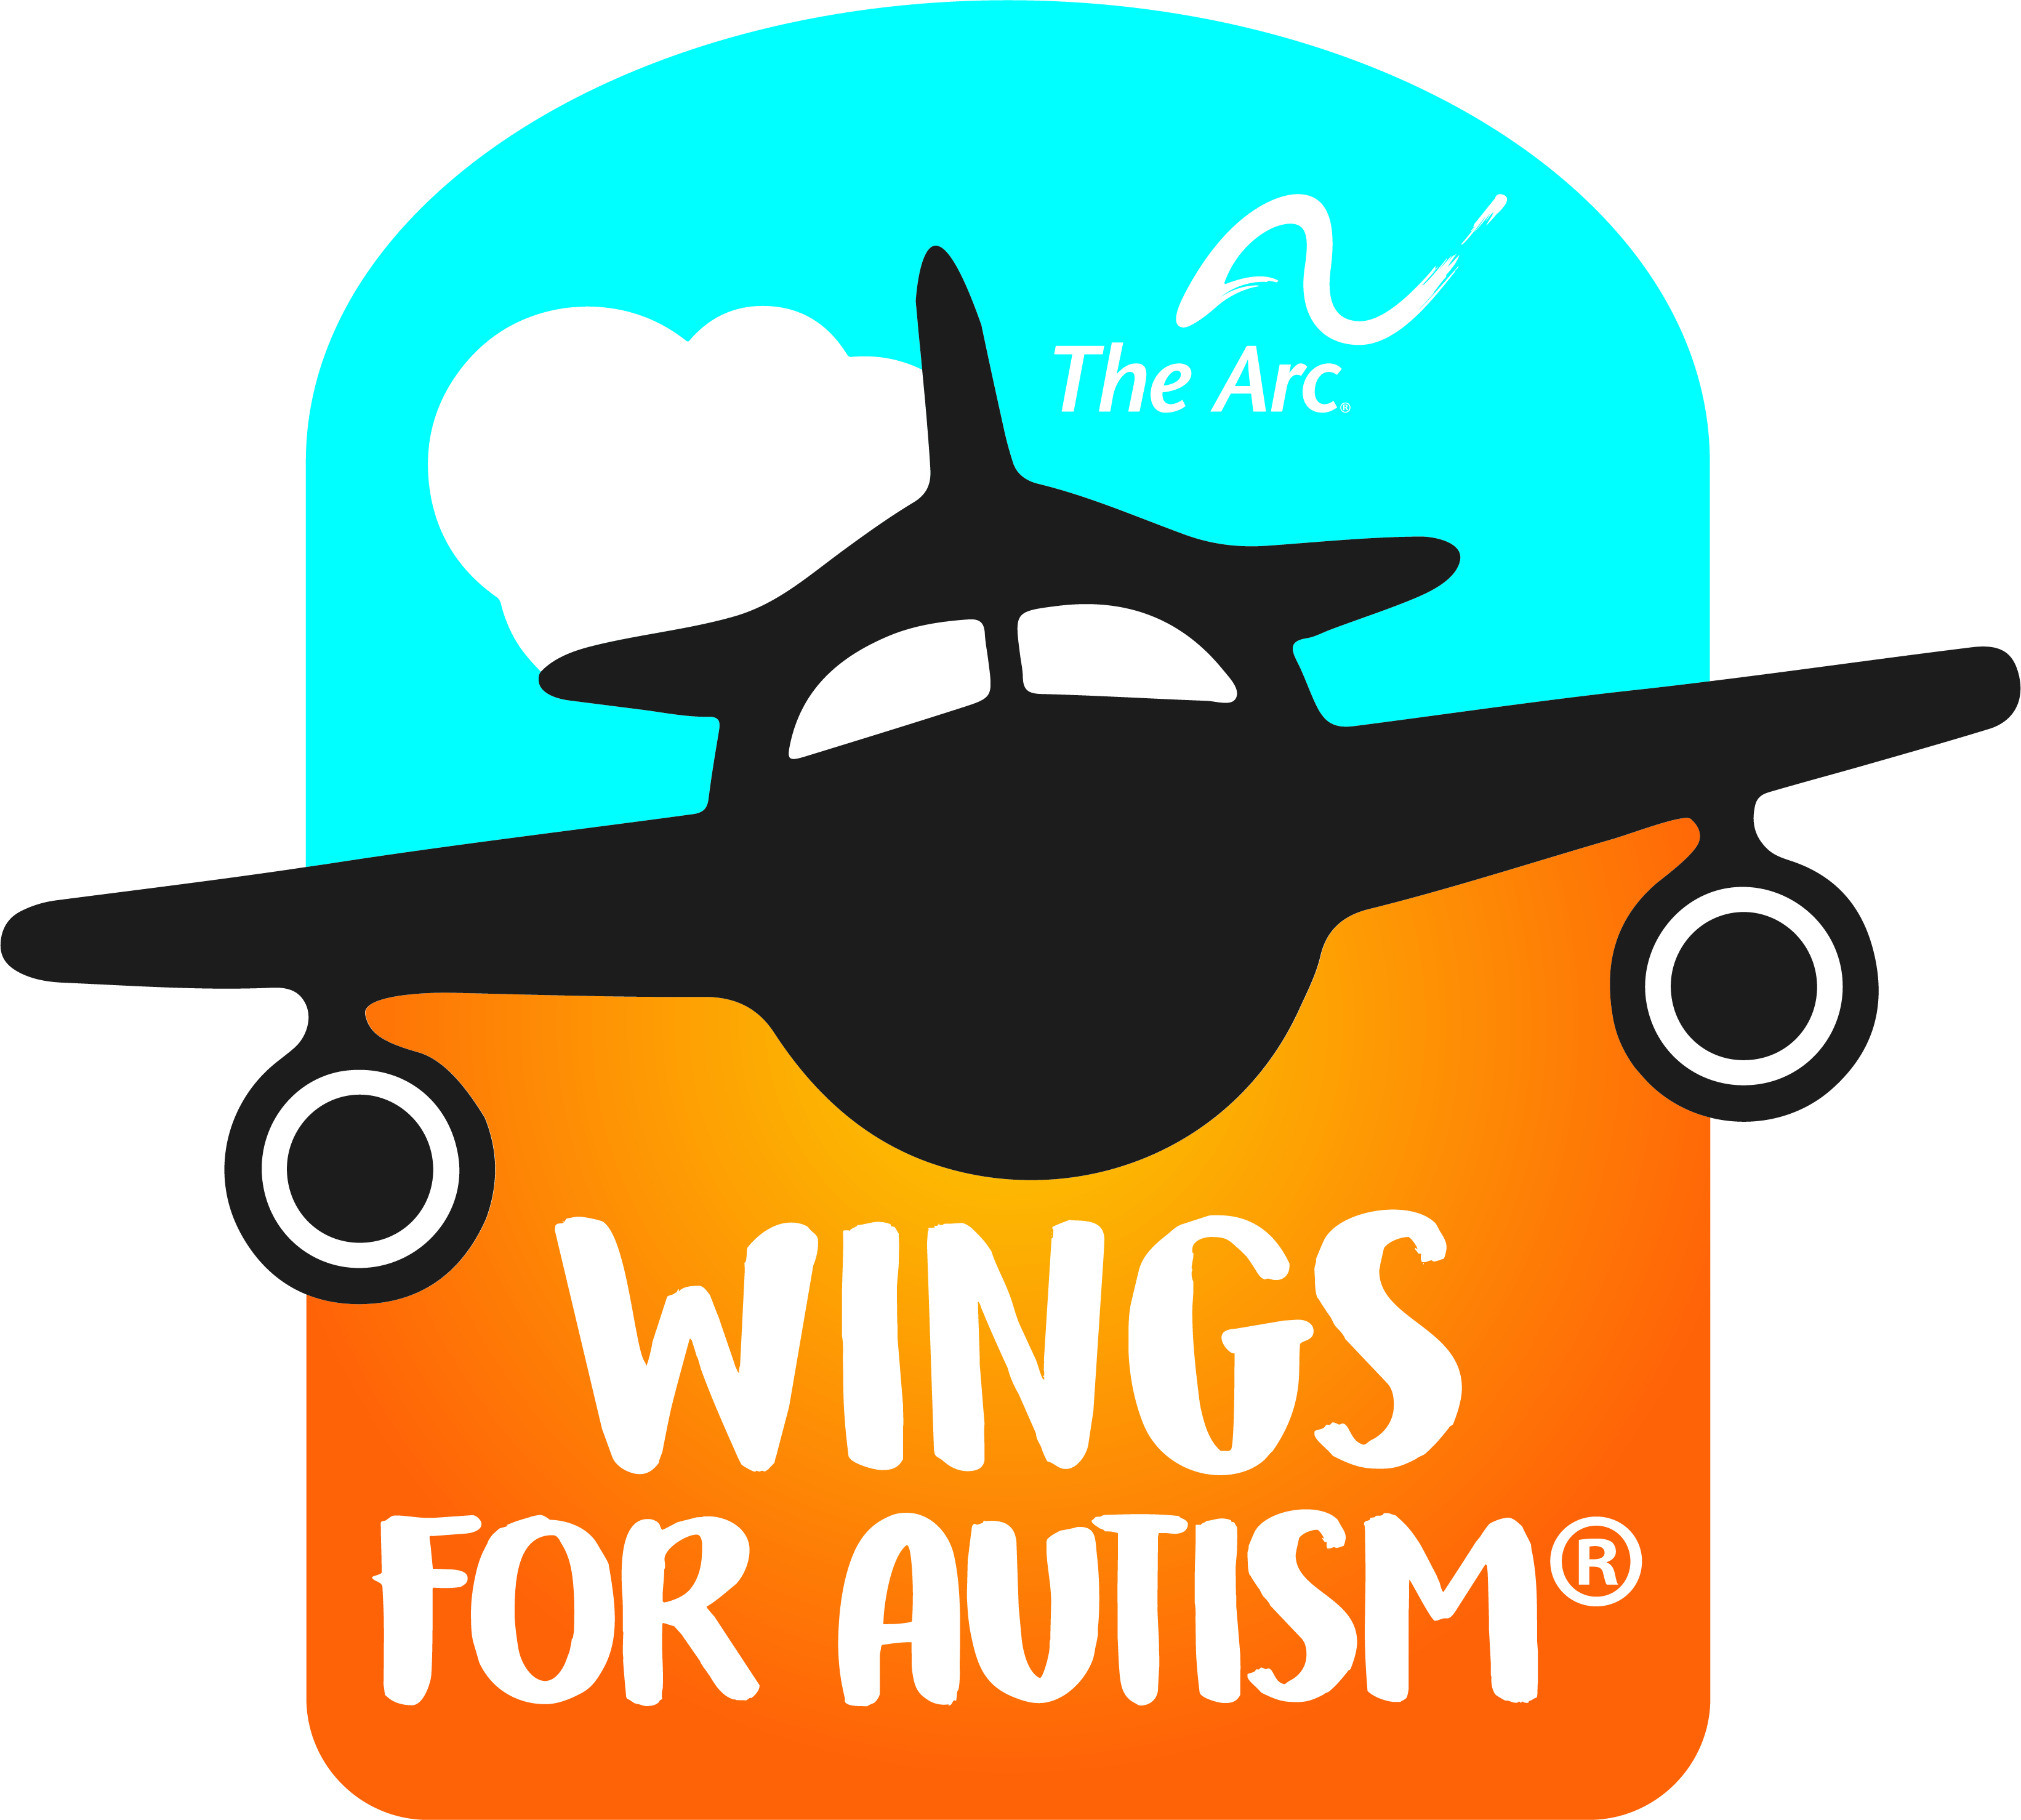 Wings For Autism_Full Color.jpg